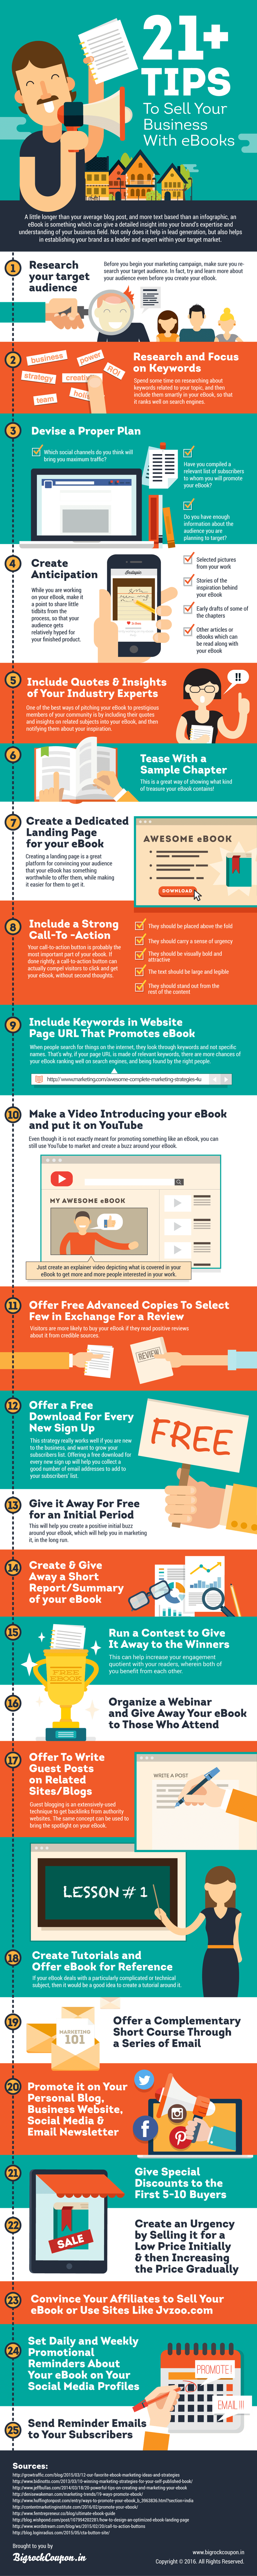 21 tips to sell your business with eBooks infographic